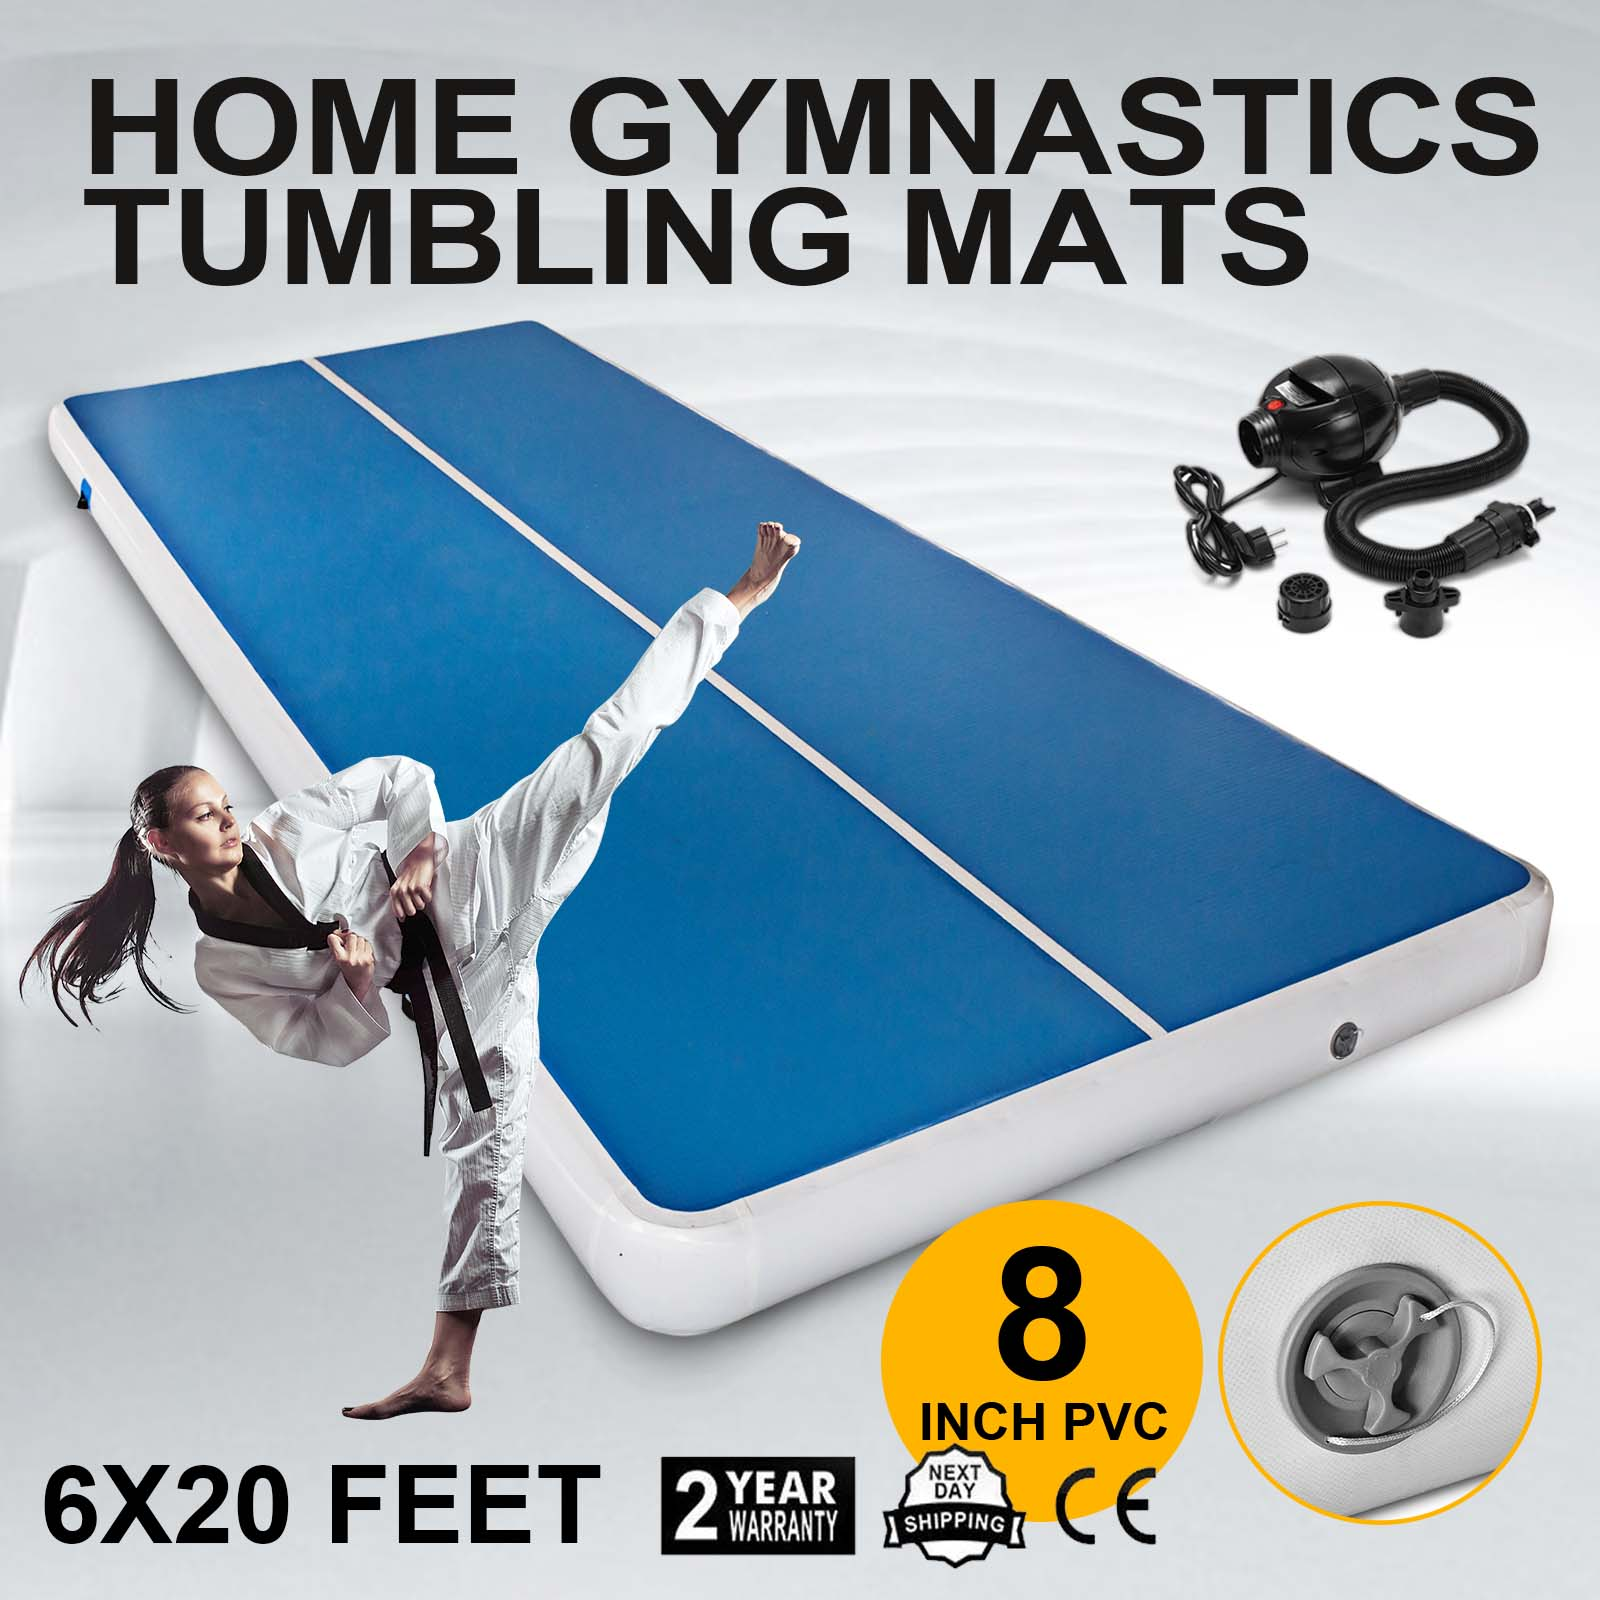 gymnastics cheap genechy for ireland home info ebay mats tumbling amazon mat